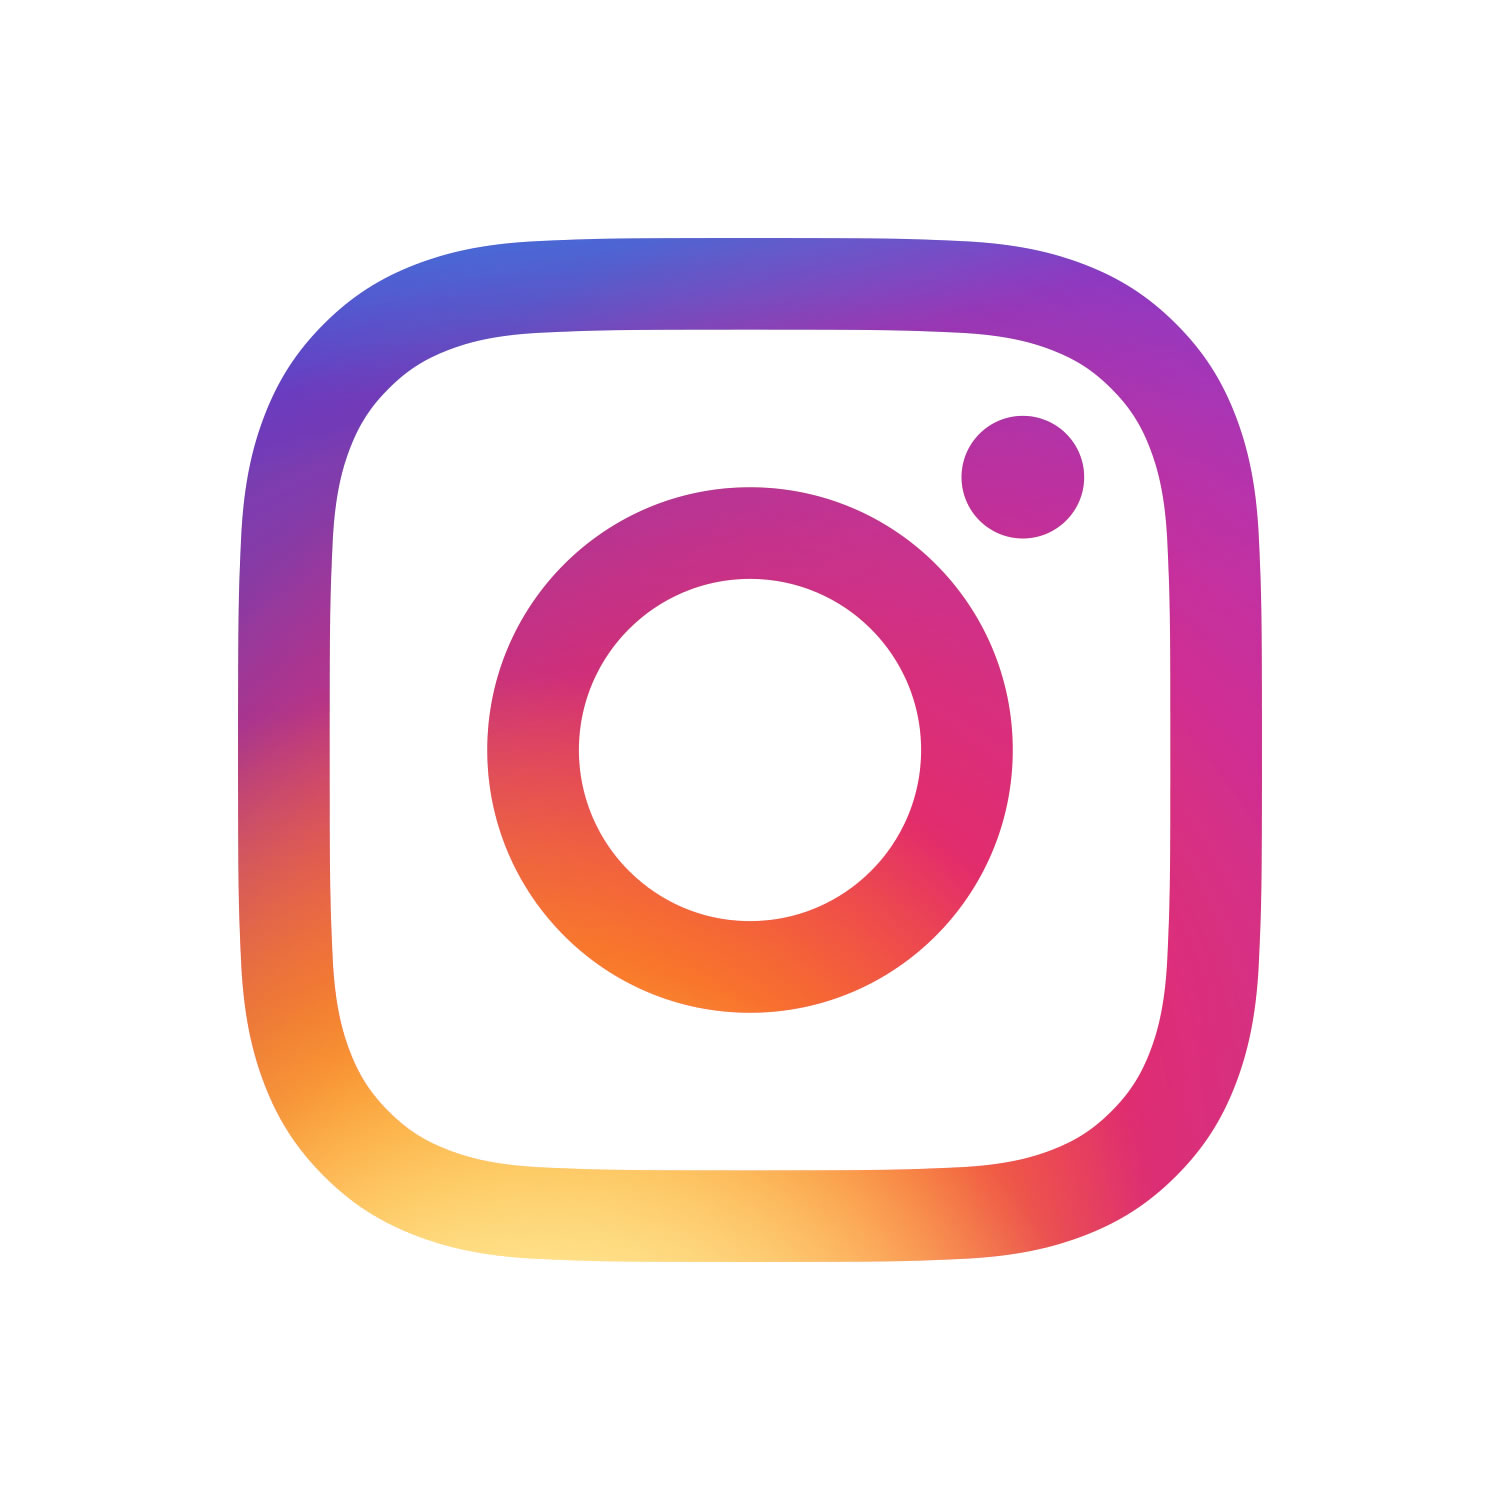 Follow Hotel Catifornia on Instagram